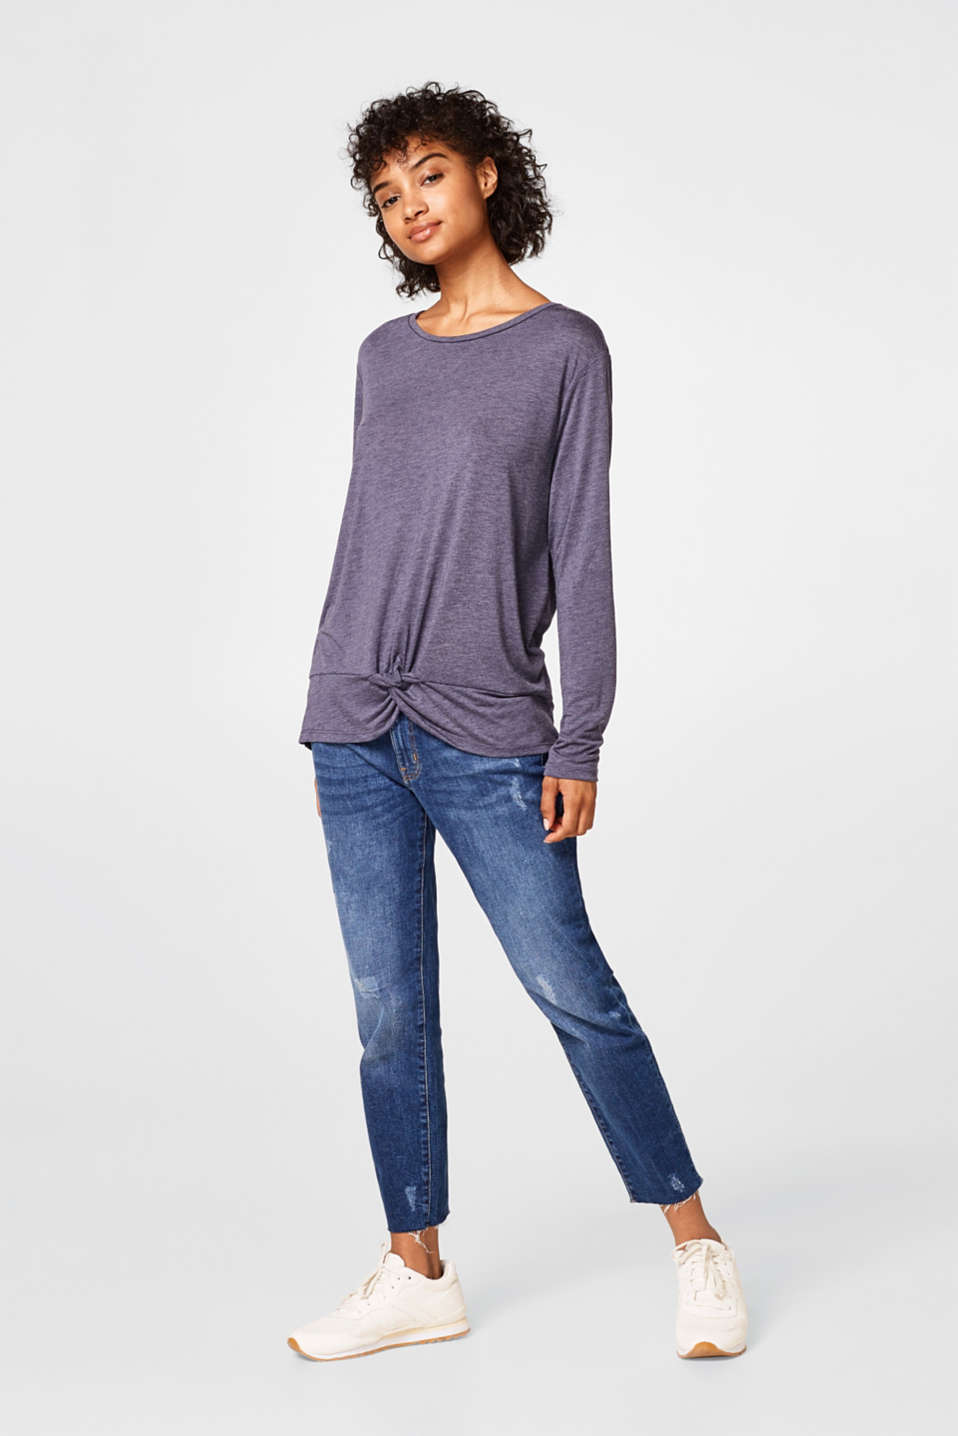 Oversized top with a knotted detail